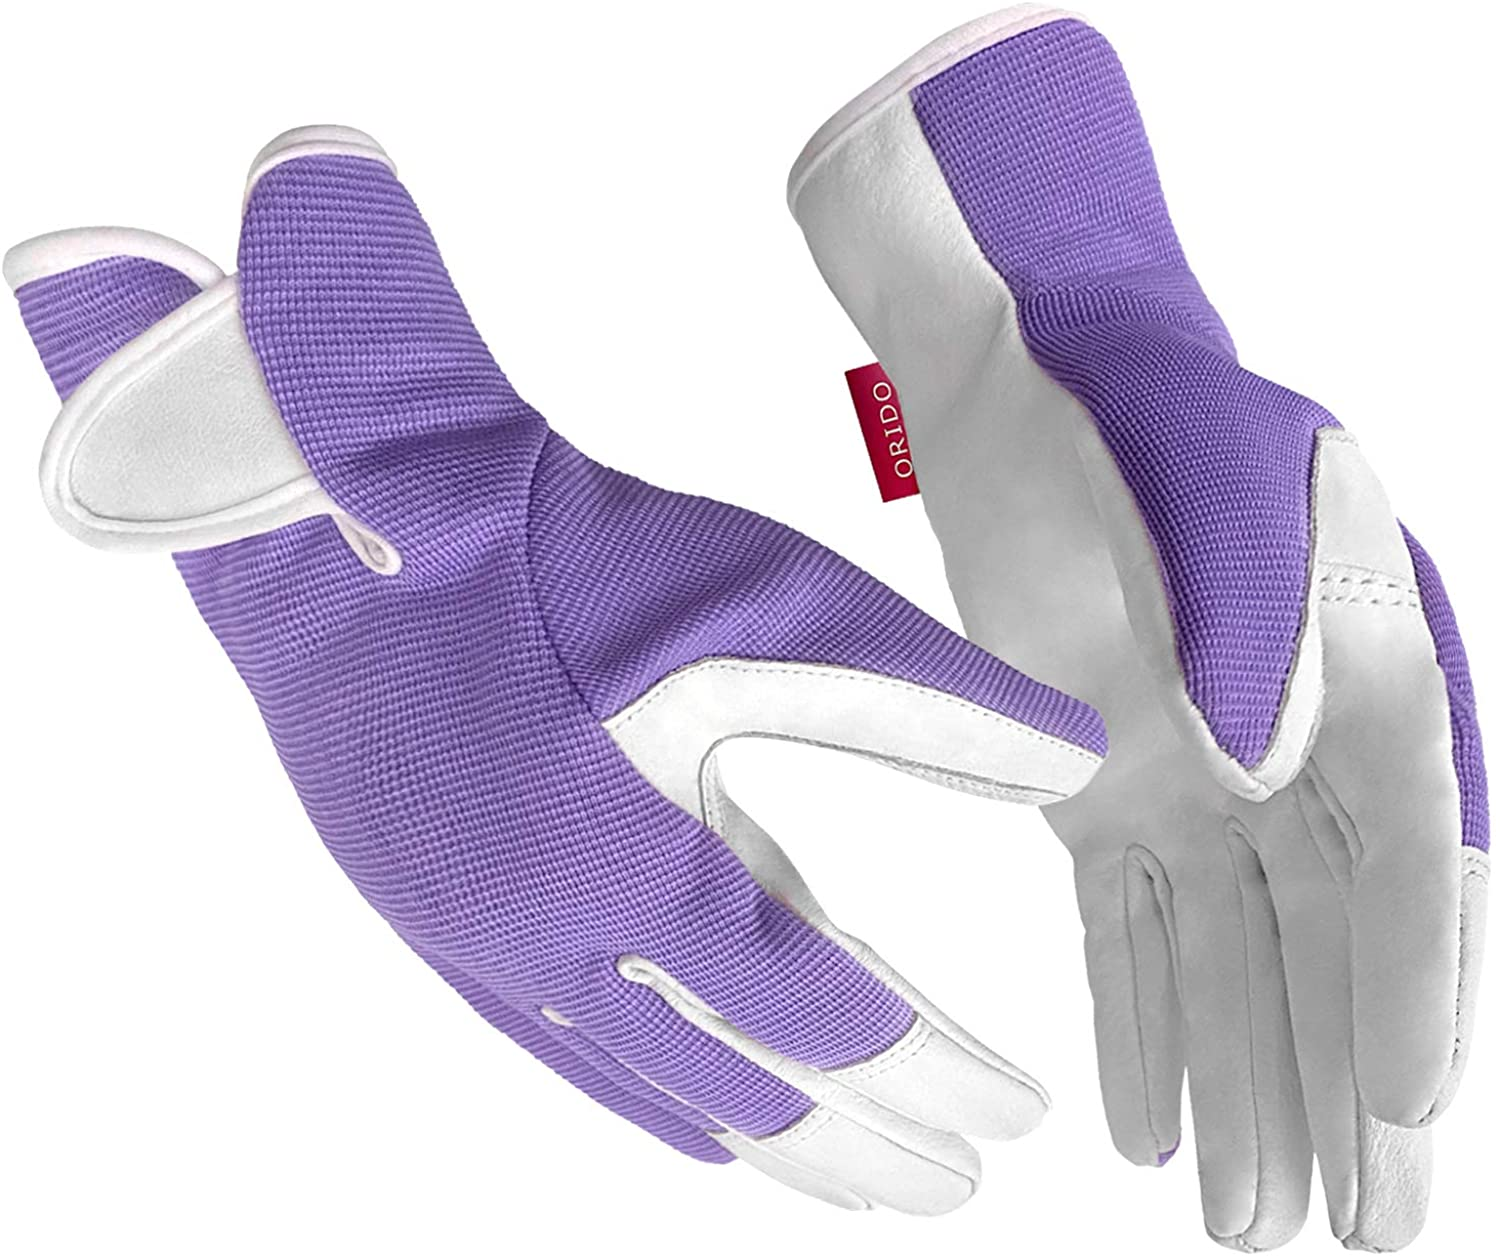 Gardening Gloves for Women - Leather Working Gloves for Womens Work Glove for Yard Gardening Weeding Digging and Pruning